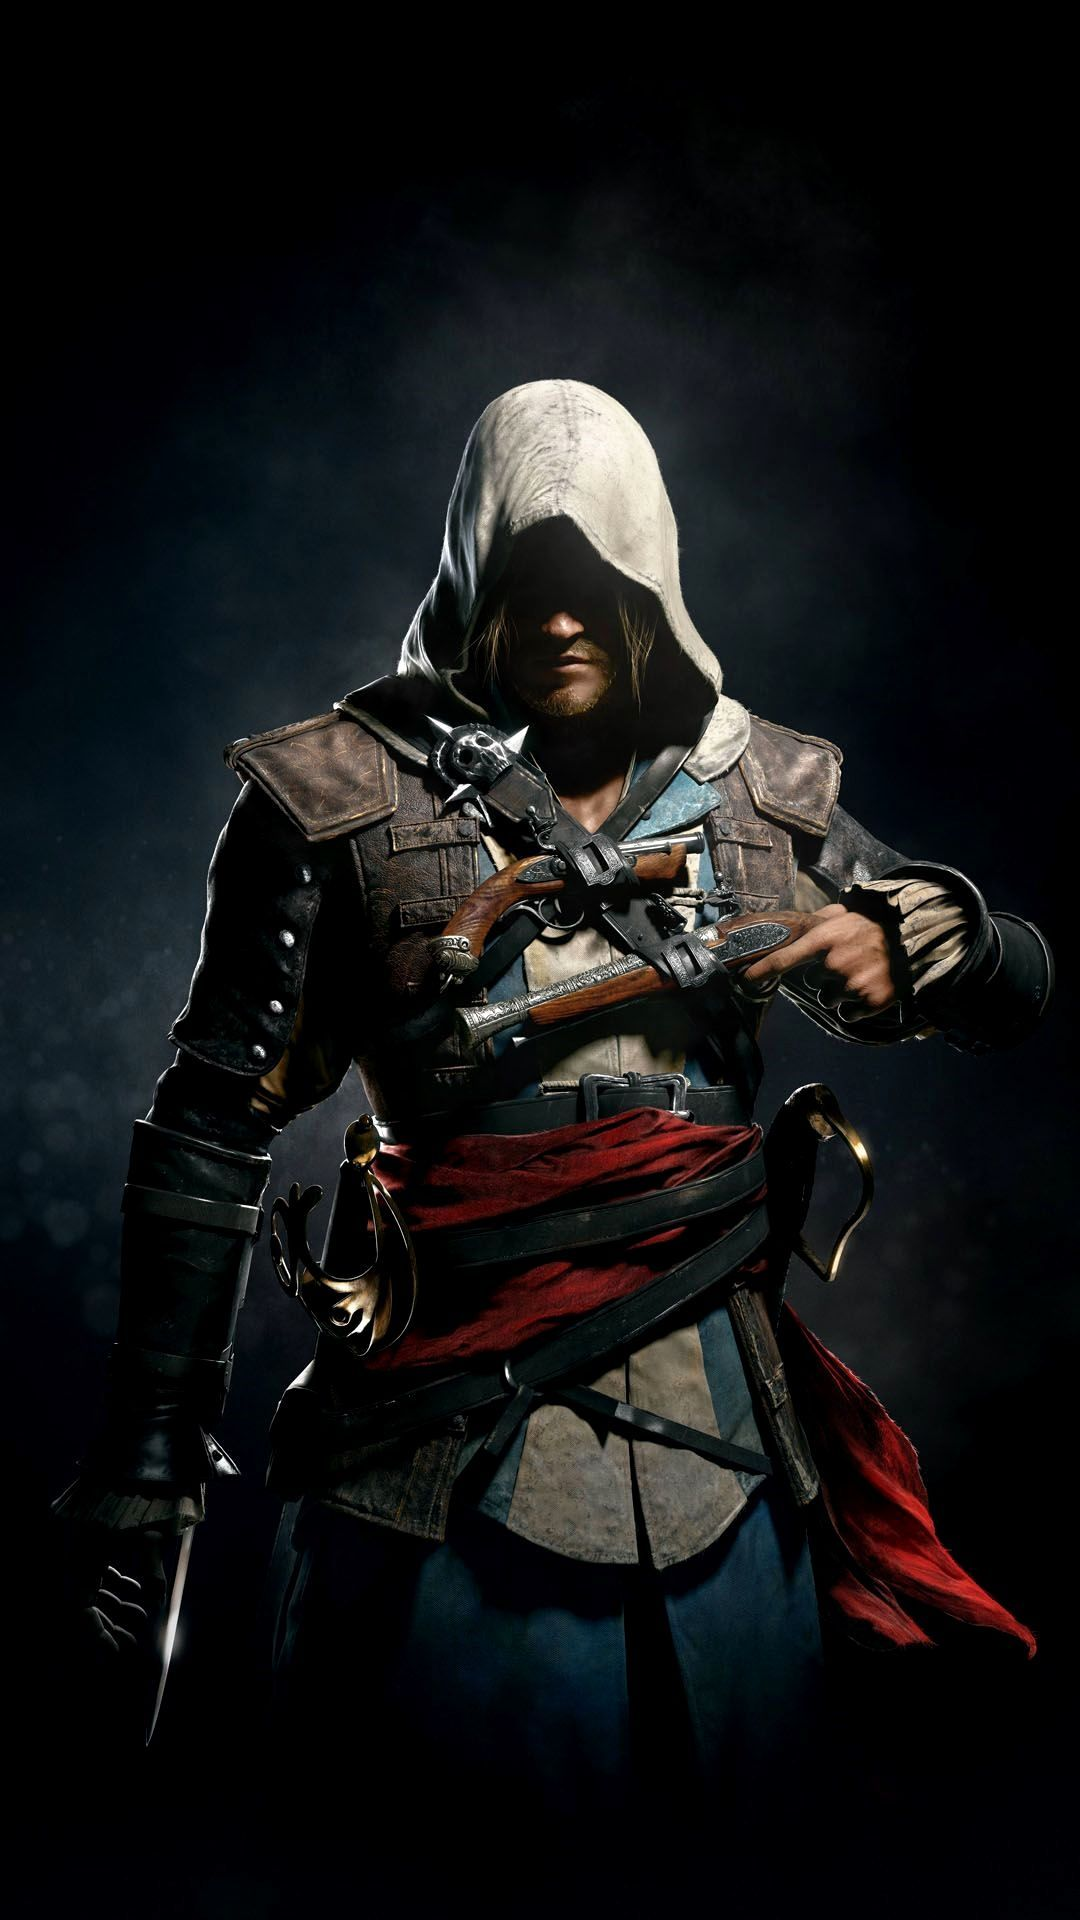 Hd Wallpaper 4k For Phone Trick 4k In 2020 Assassins Creed Black Flag Assassin S Creed Wallpaper Assassin S Creed Black